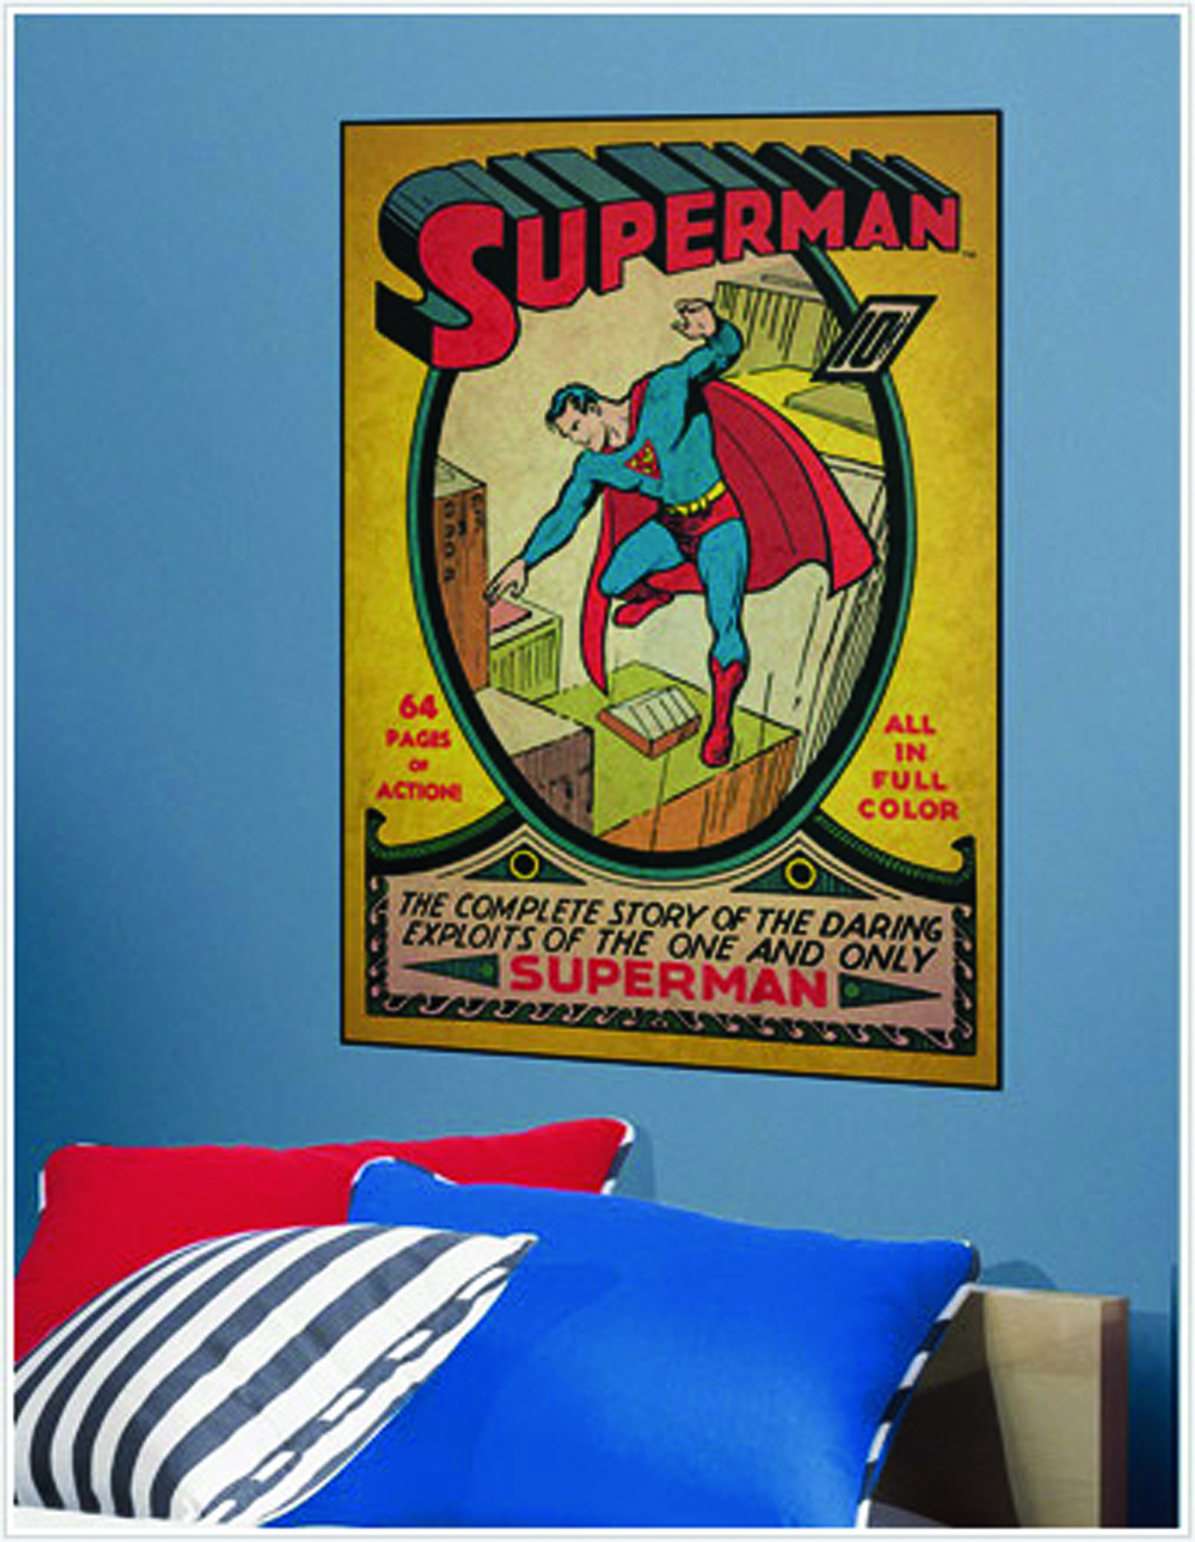 SUPERMAN #1 COMIC COVER GIANT WALL DECAL